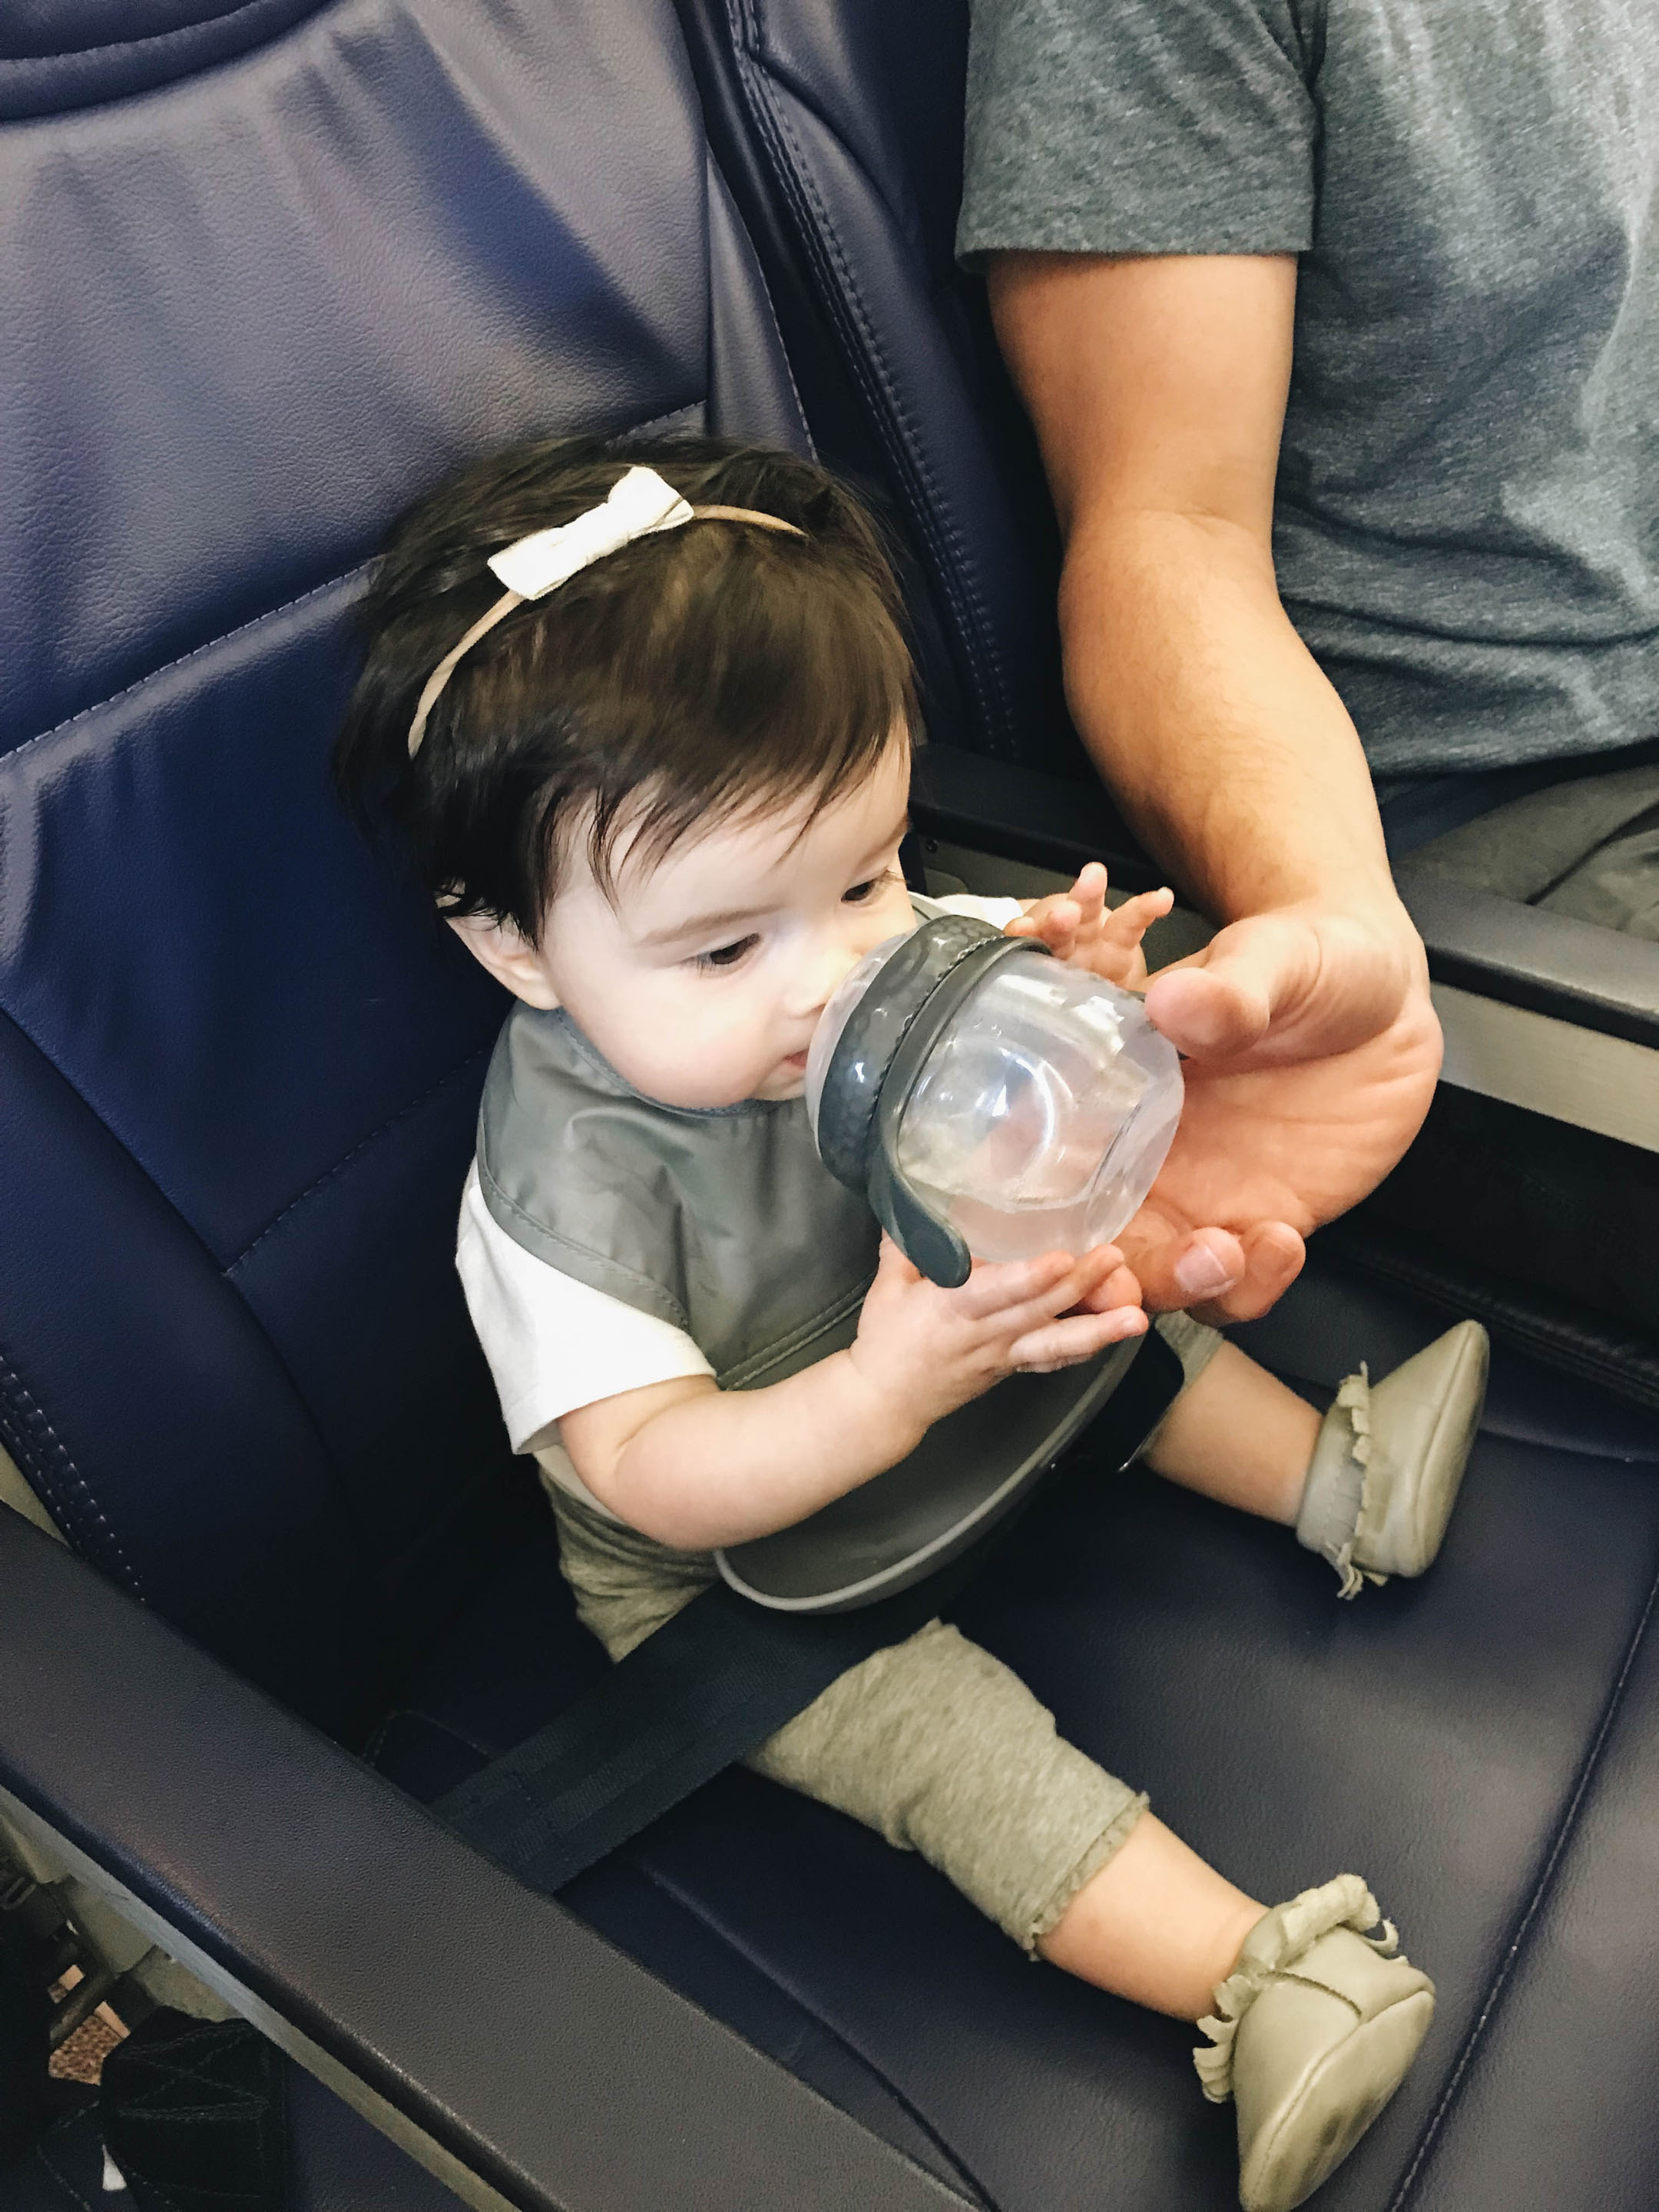 Baby on plane 3